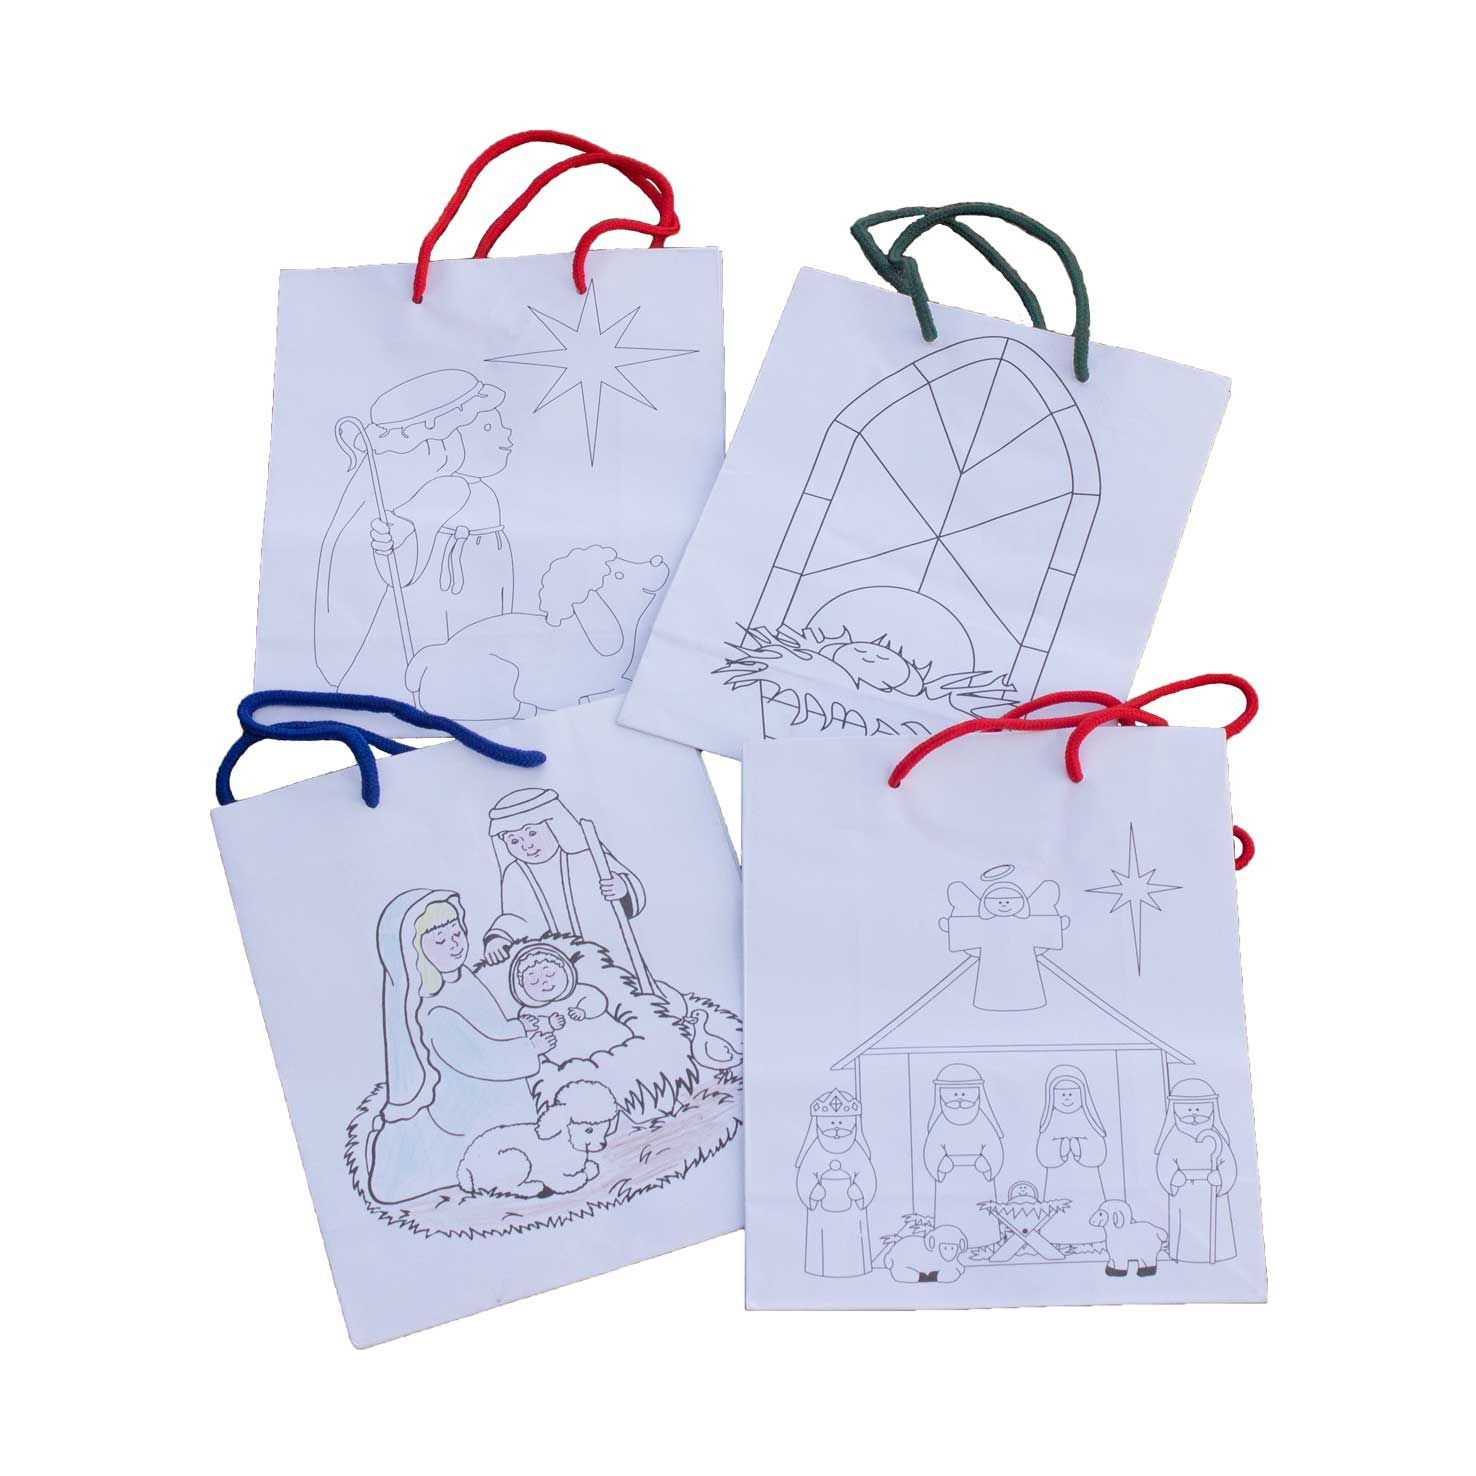 Colour Your Own Gift Bag